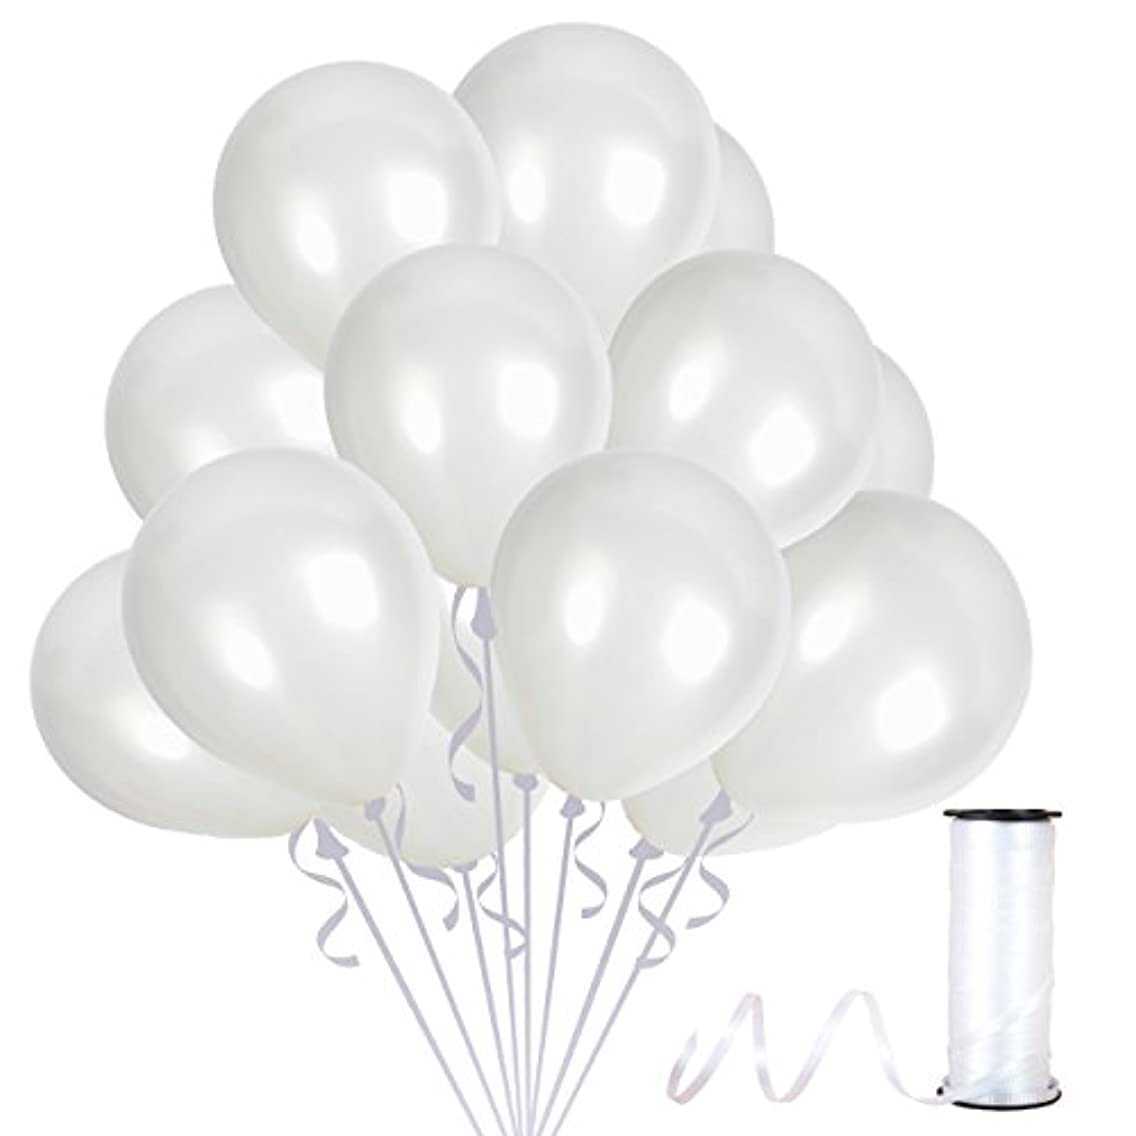 Treasures Gifted 4th of July Party Kit 12 Inch Pearl White Metallic Latex Balloons Premium Quality Bouquet for Arch Column Stand School Wedding Baby Shower Birthday Party Decorations (36 Pack)